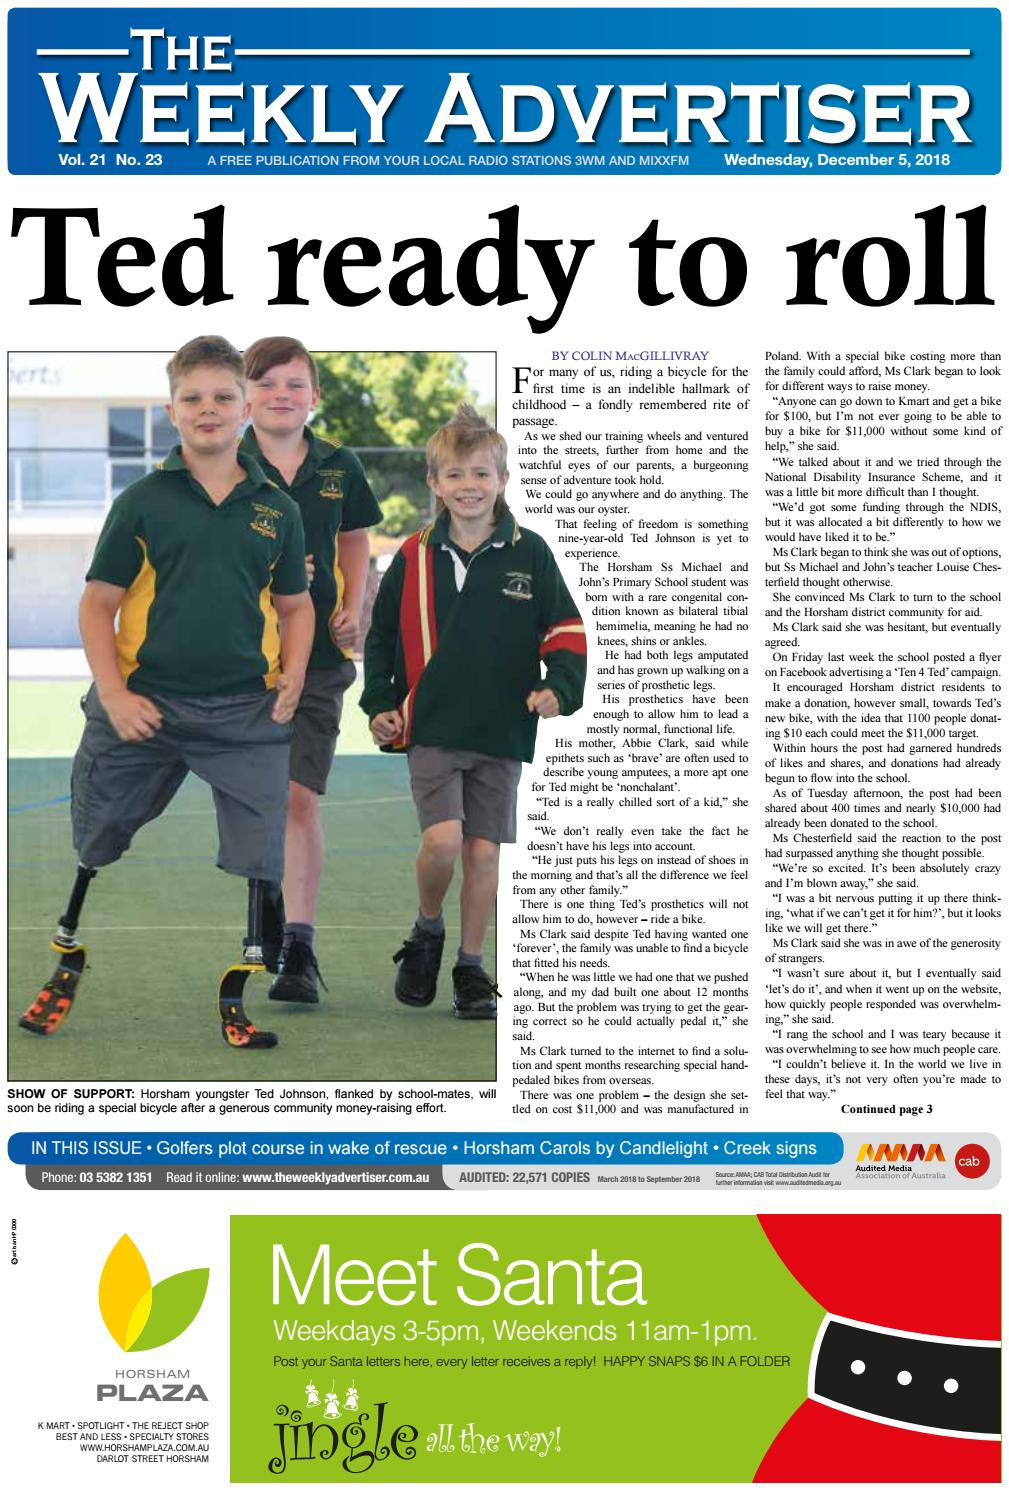 The Weekly Advertiser - Wednesday, December 5, 2015 by The